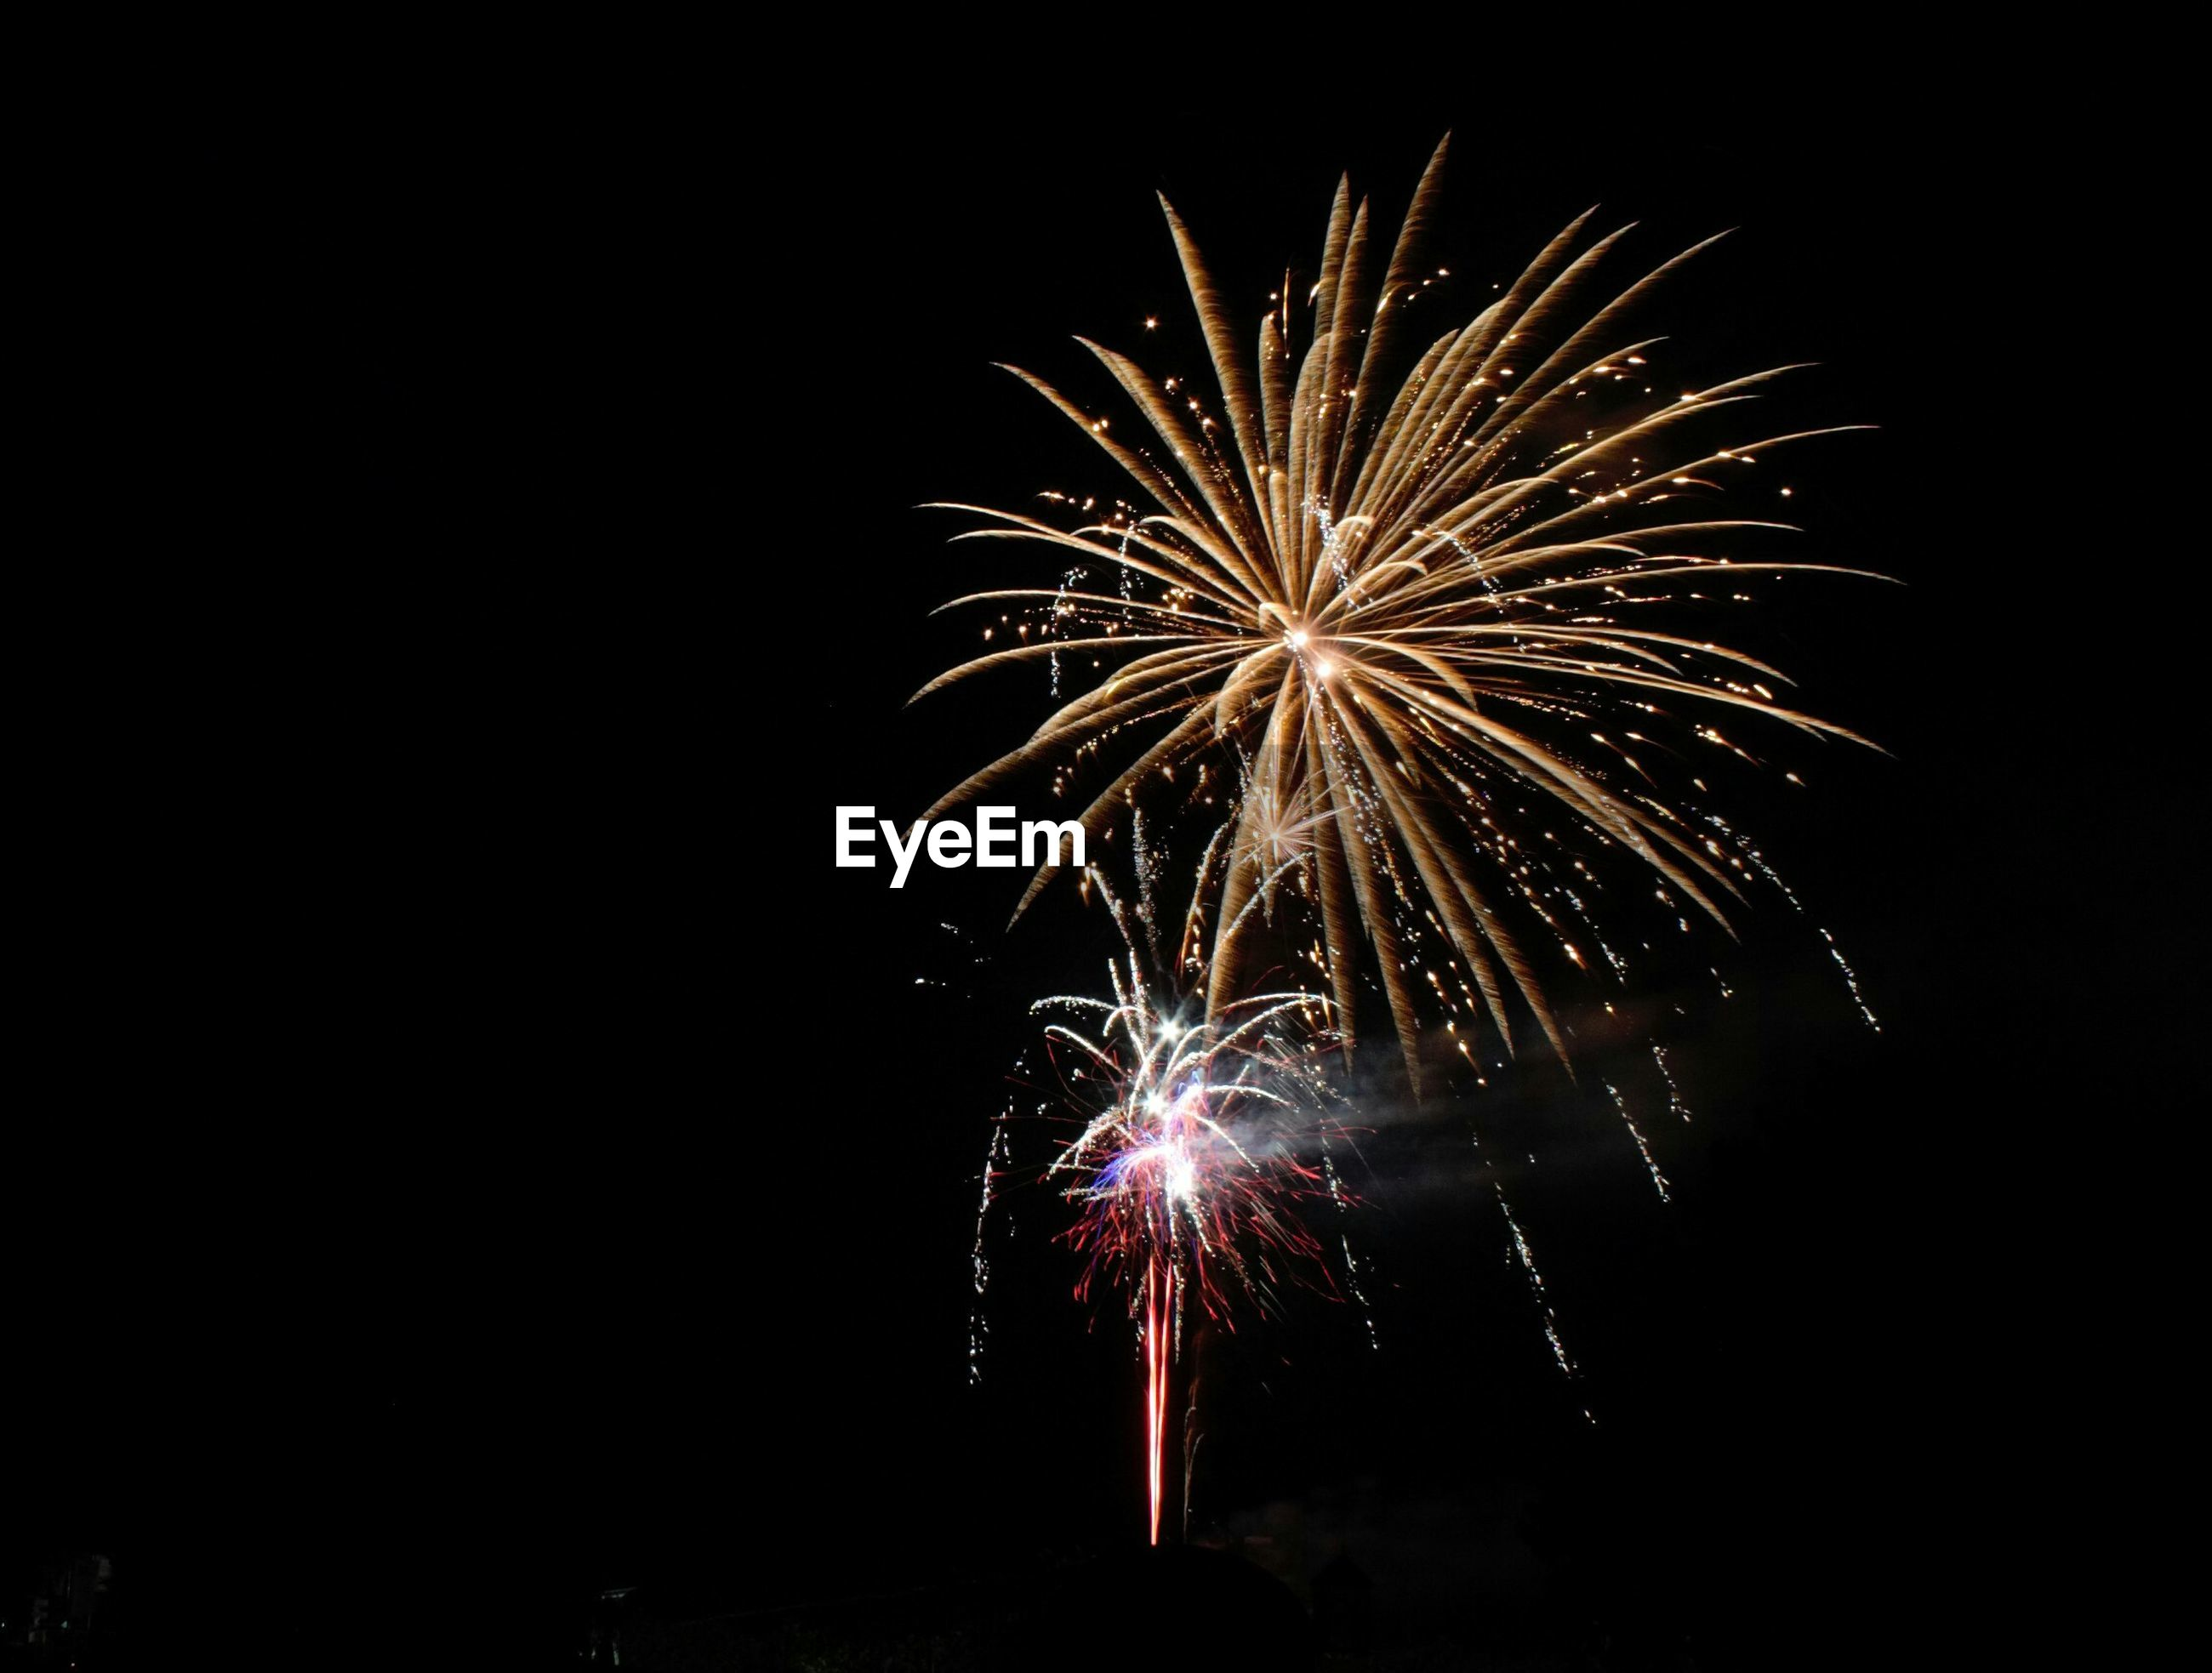 firework display, night, exploding, celebration, long exposure, firework - man made object, illuminated, motion, event, glowing, sparks, firework, arts culture and entertainment, blurred motion, entertainment, low angle view, sky, celebration event, fire - natural phenomenon, multi colored